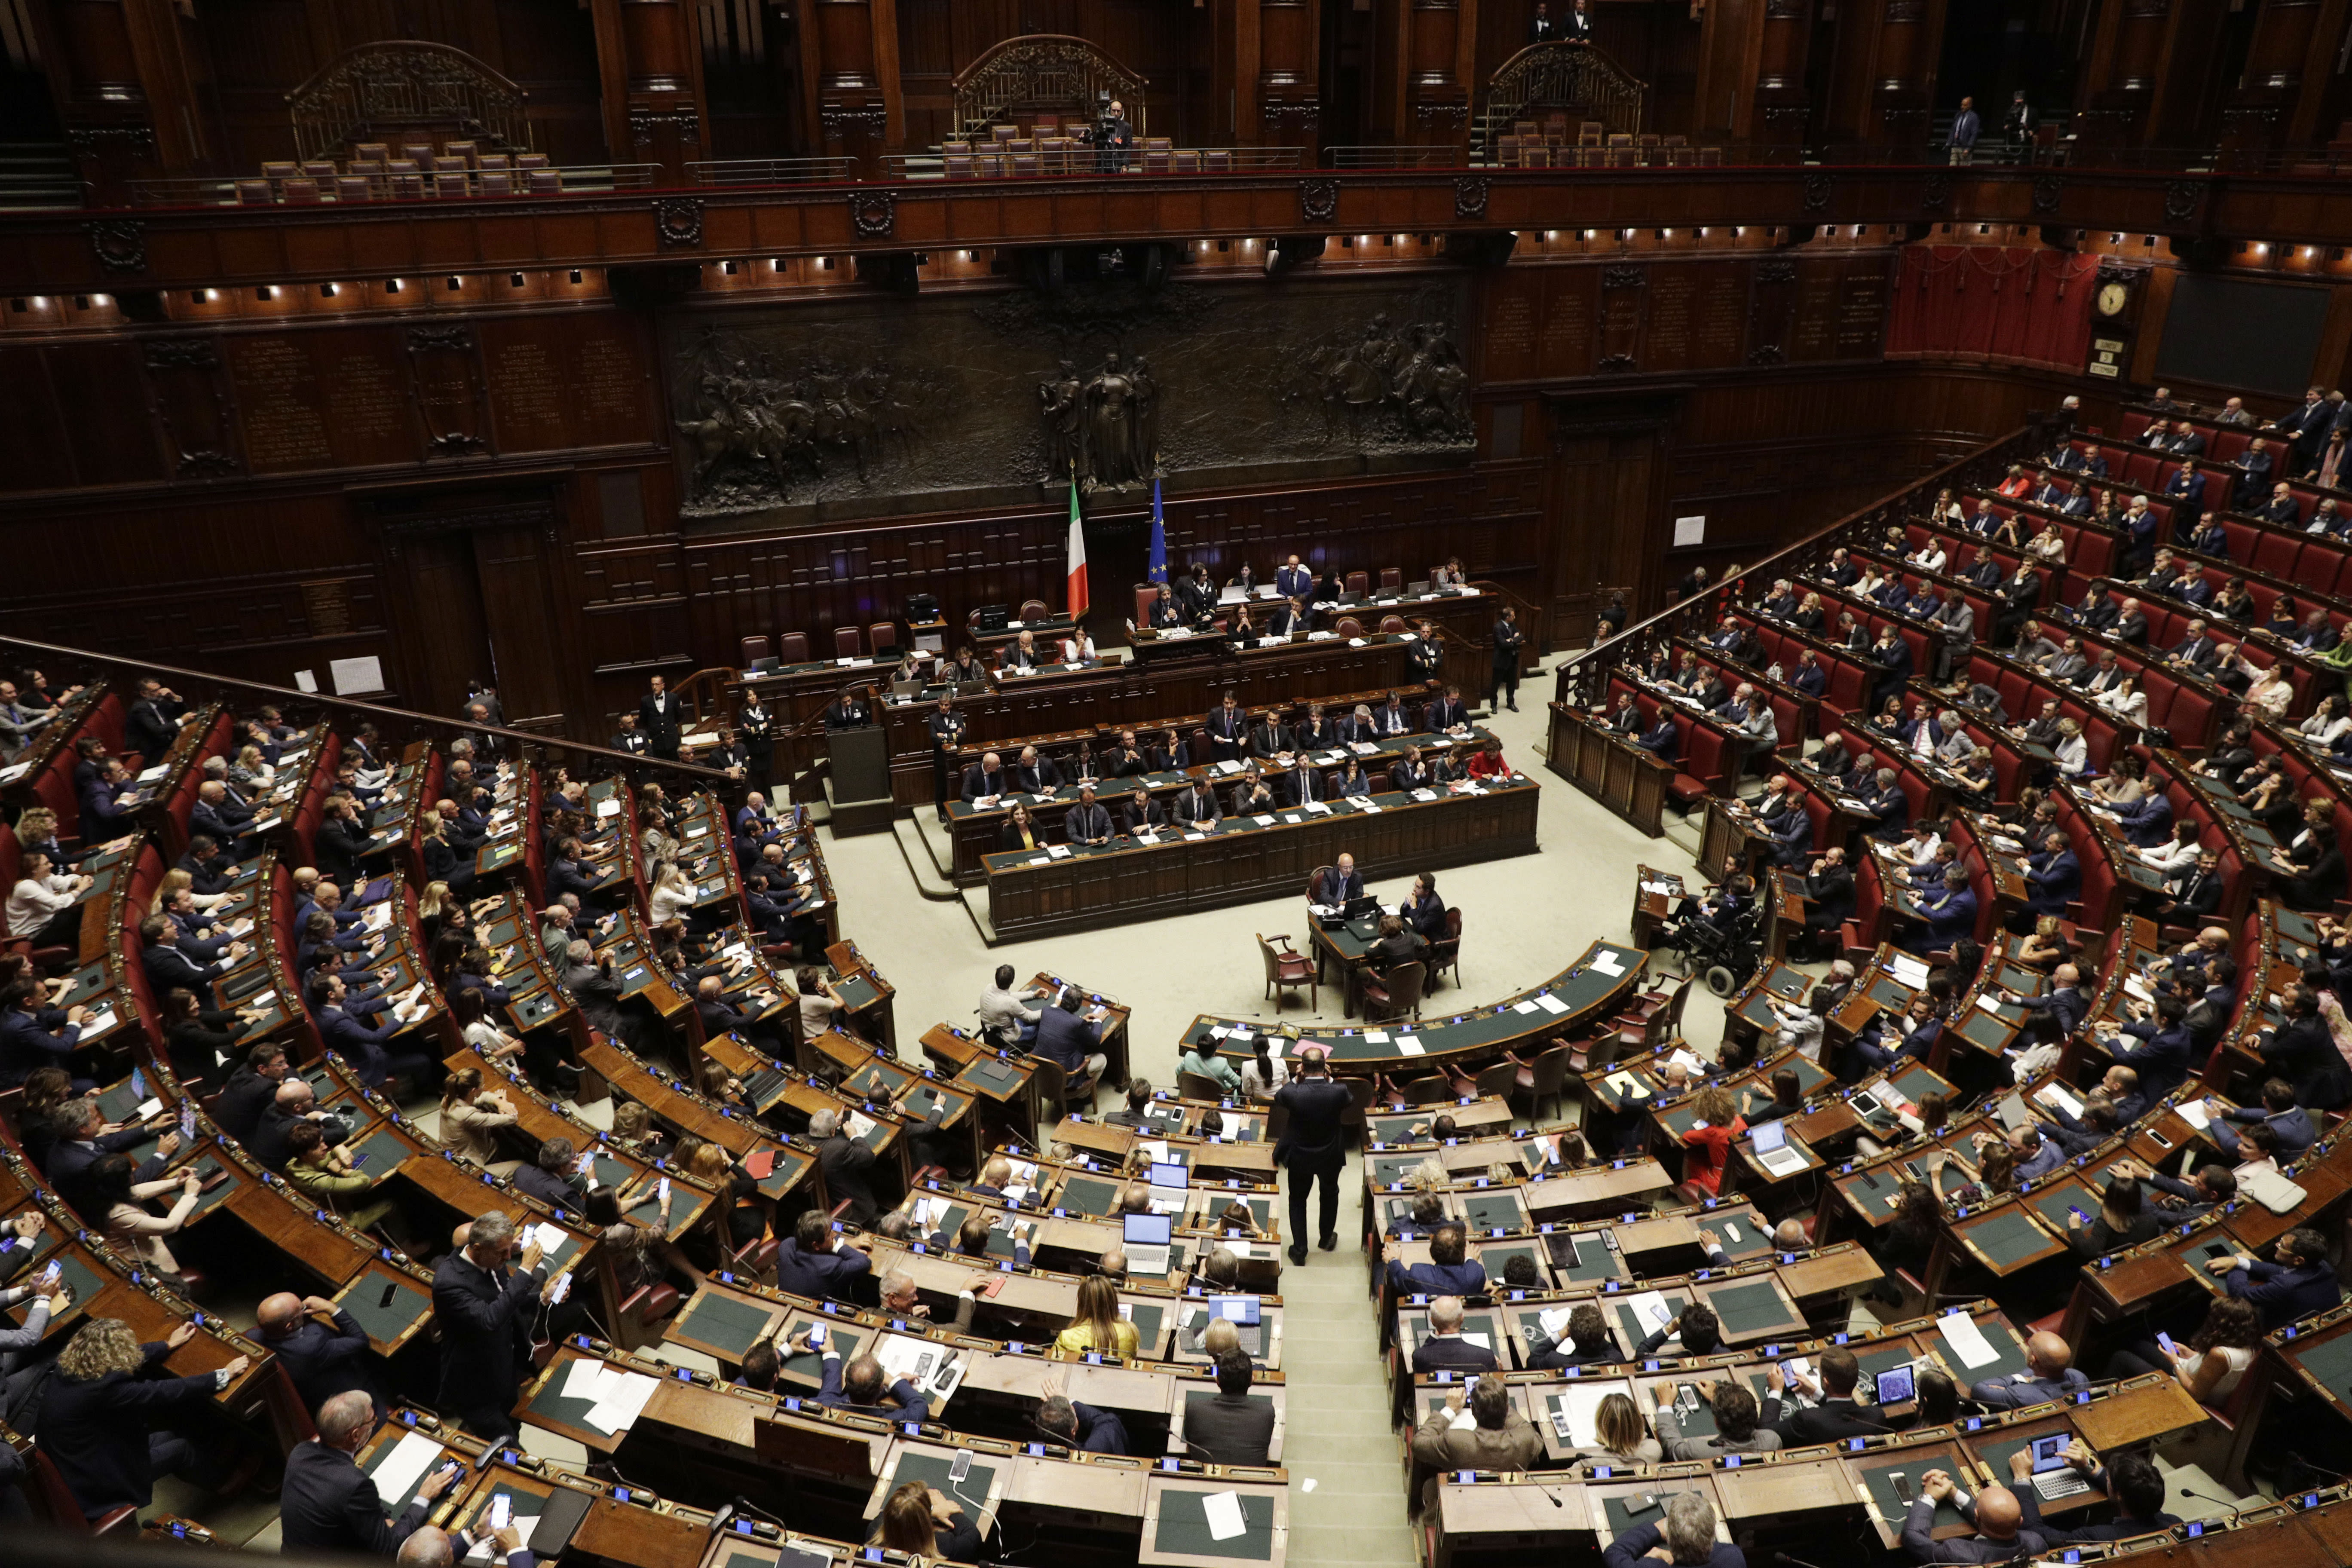 Italian Premier Giuseppe Conte, center, intervenes in the parliament debate ahead of confidence vote later at the Lower Chamber in Rome, Monday, Sept. 9, 2019. Conte is pitching for support in Parliament for his new left-leaning coalition ahead of crucial confidence votes. (AP Photo/Gregorio Borgia)